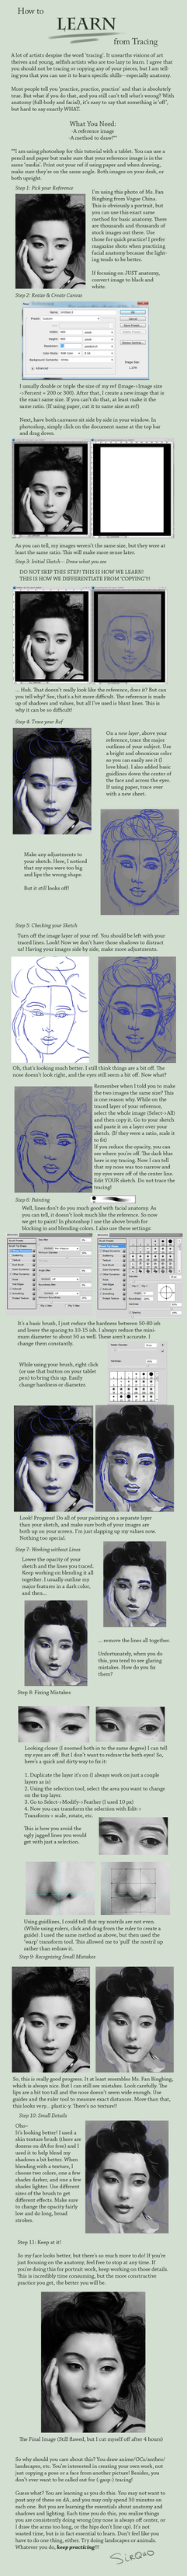 How to LEARN from Tracing by Sirquo